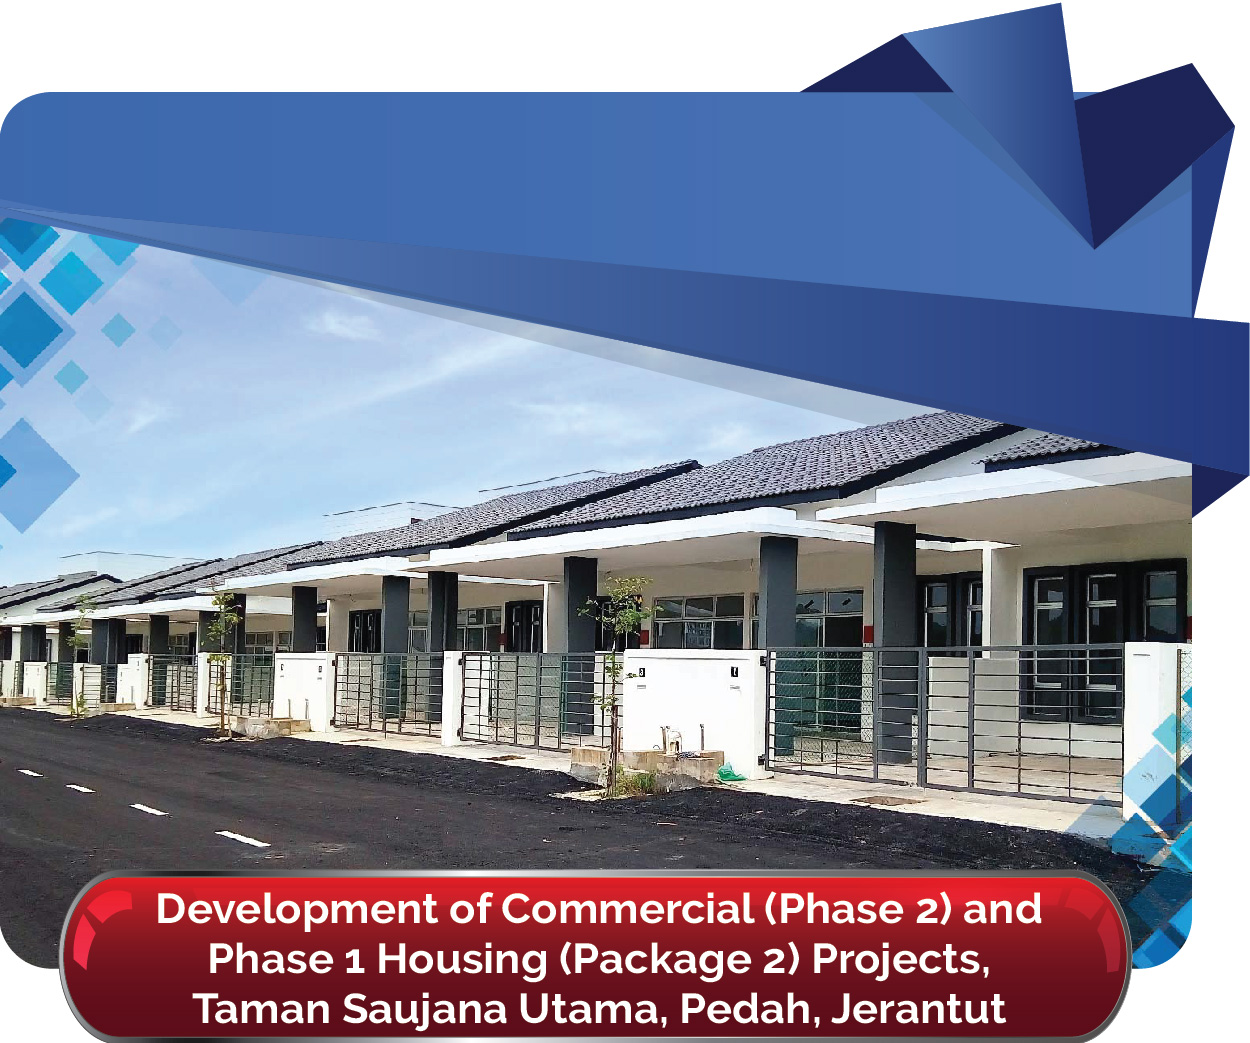 Commercial Phase 2 and Phase 1 Housing Package 2 Projects Taman Saujana Utama 01